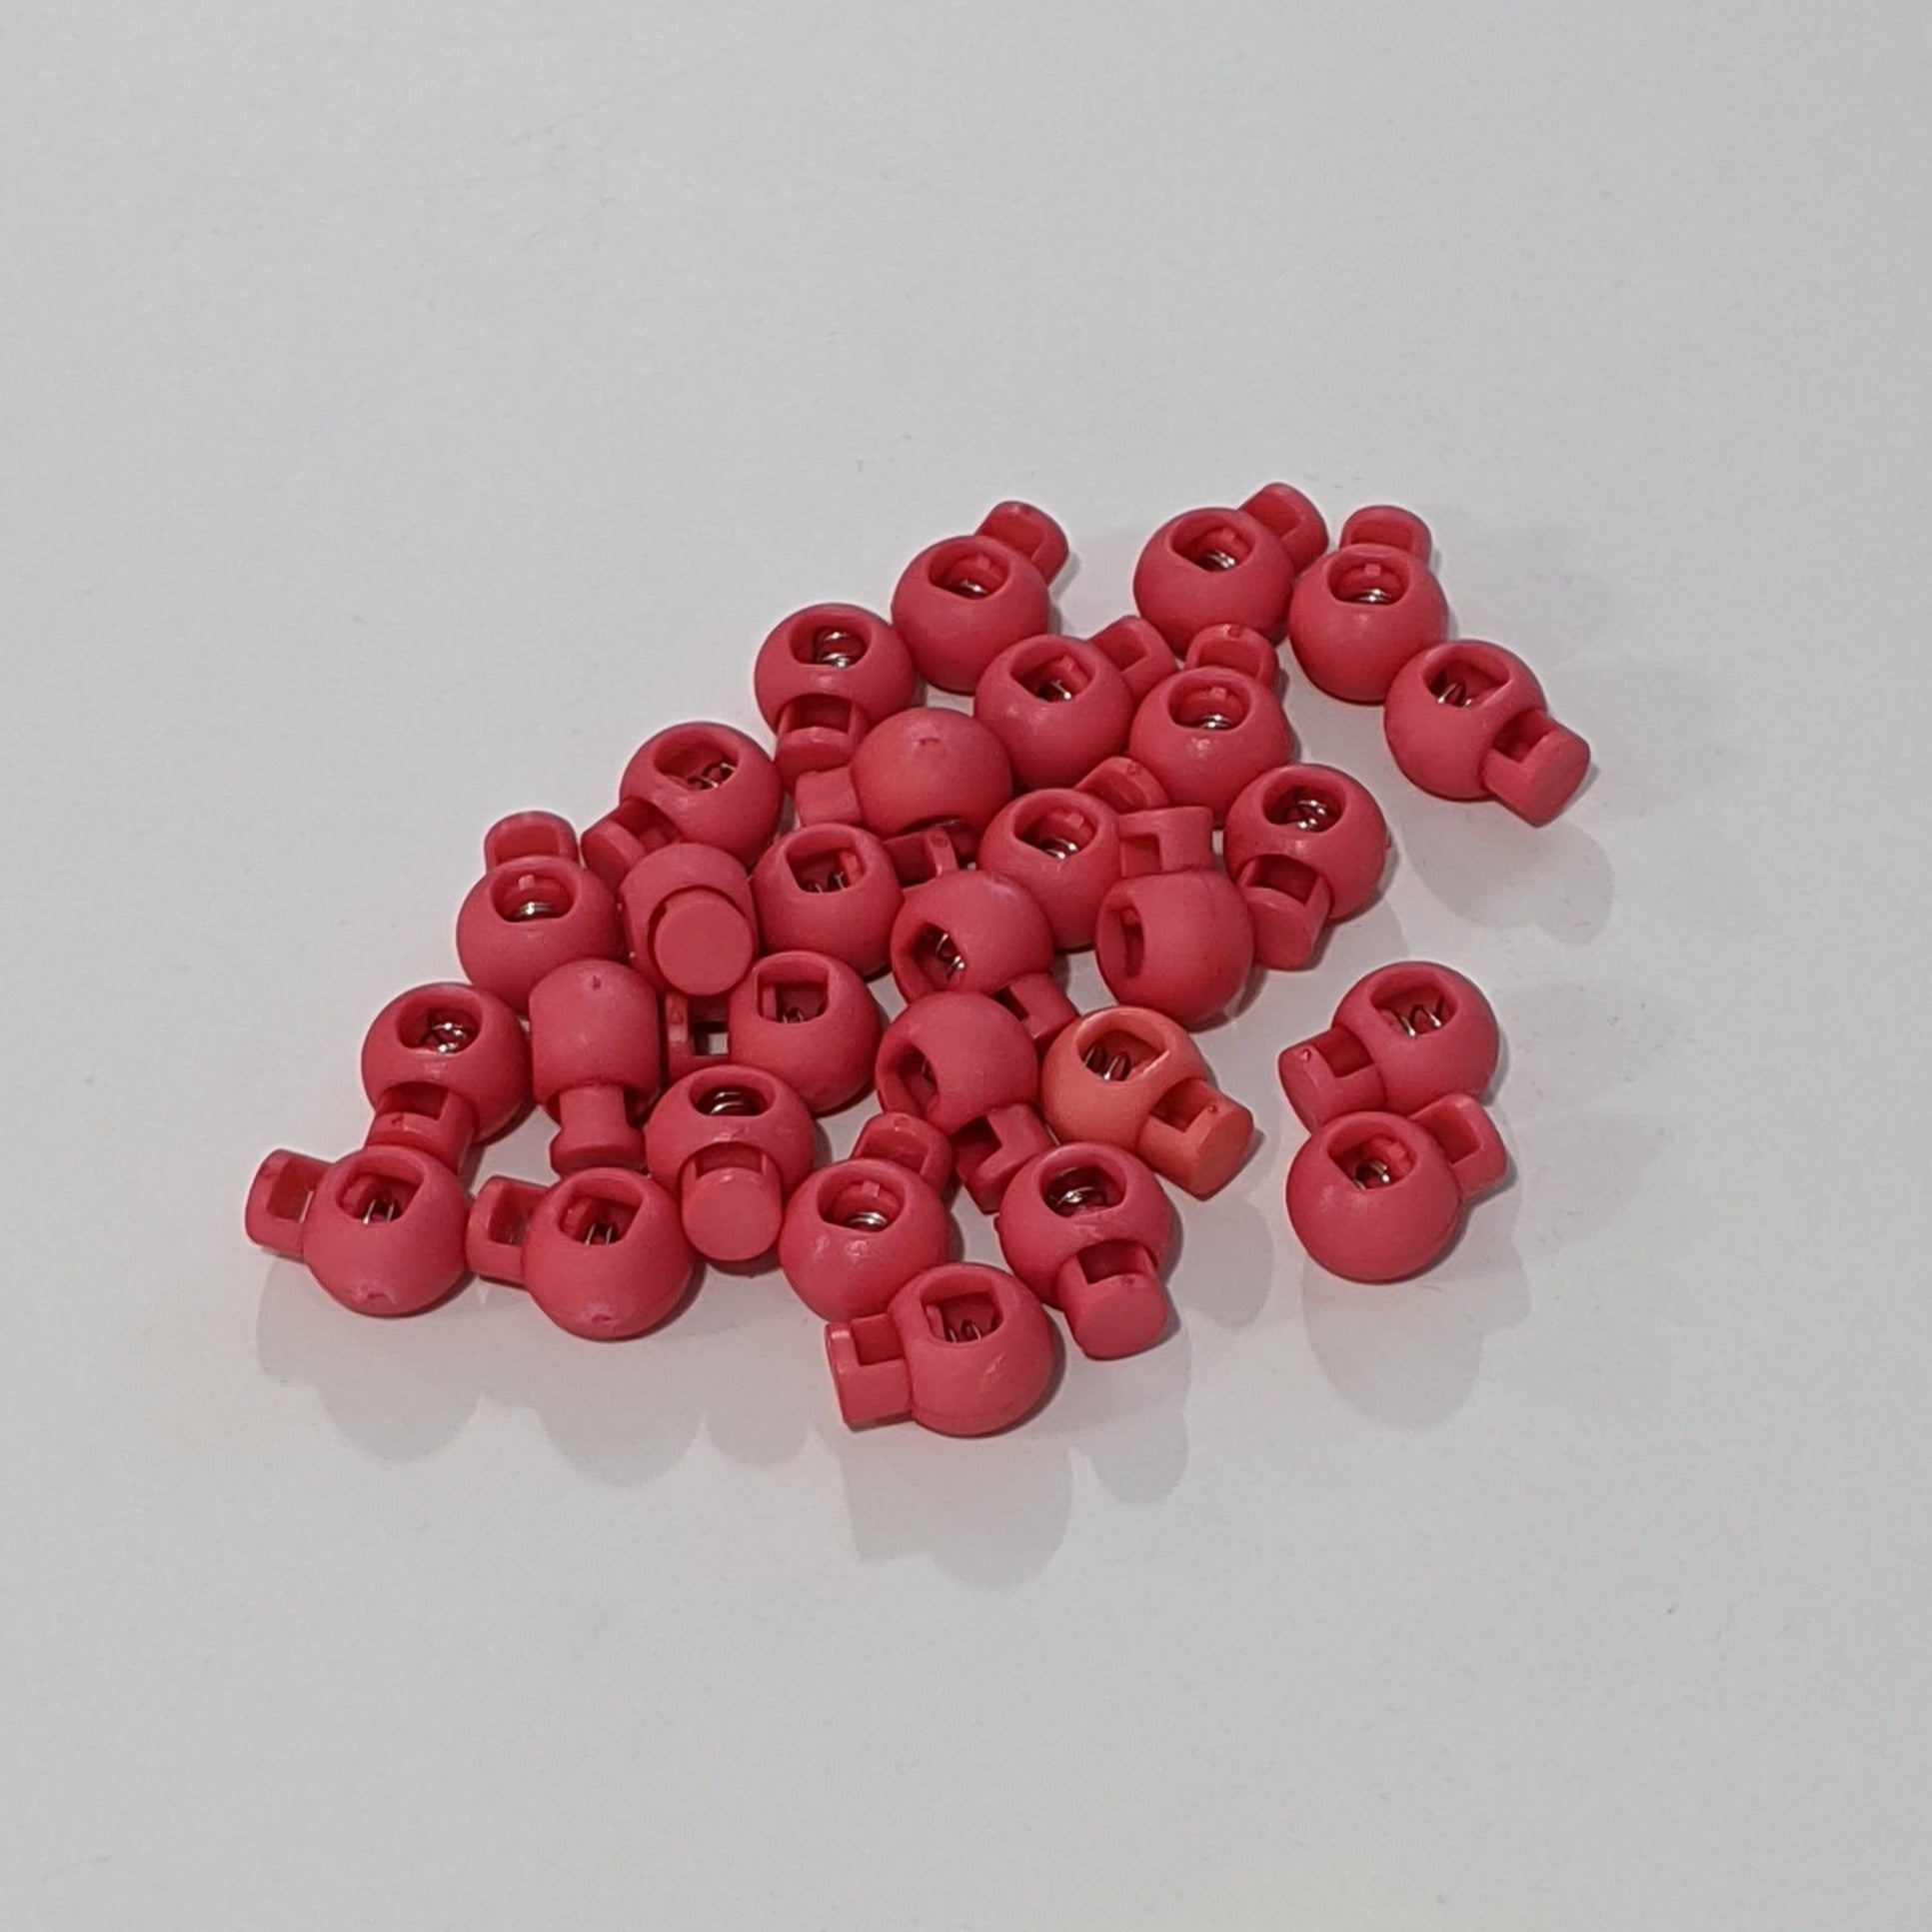 8mm Drawstring Cord Stopper - Watermelon